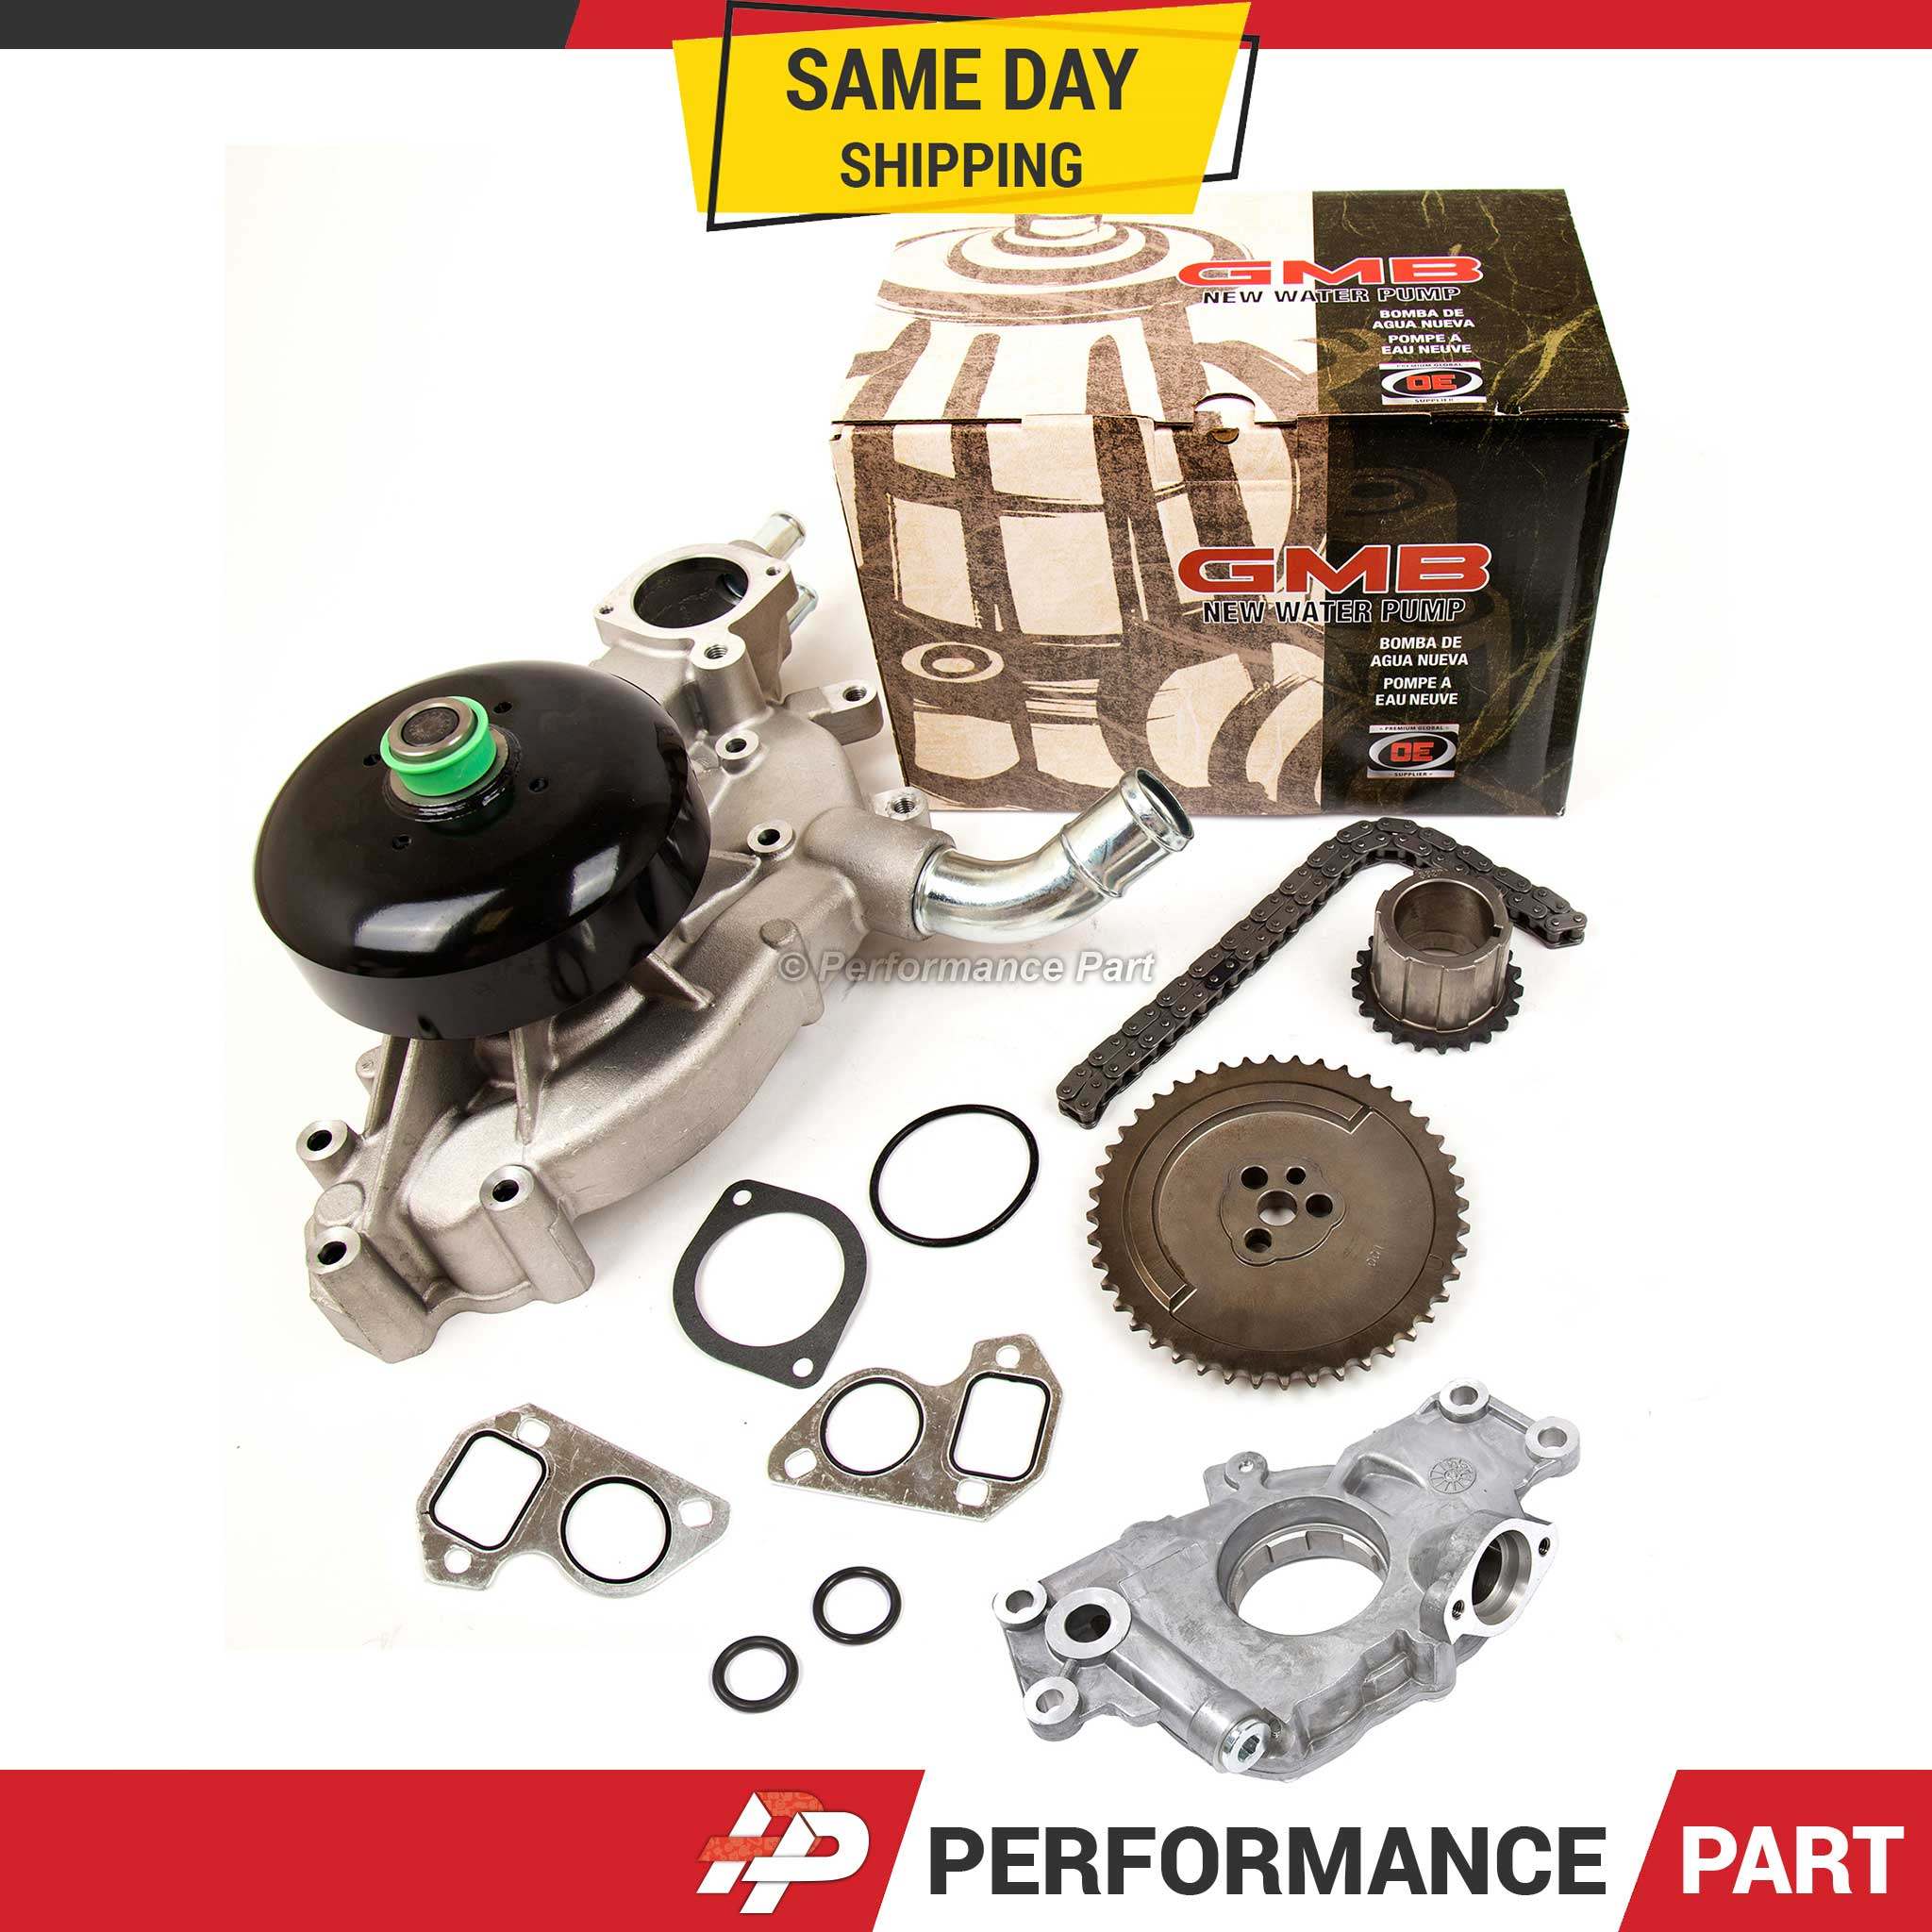 Timing Chain Kit Water Oil Pump for 97-04 Cadillac Chevrolet GMC 4.8